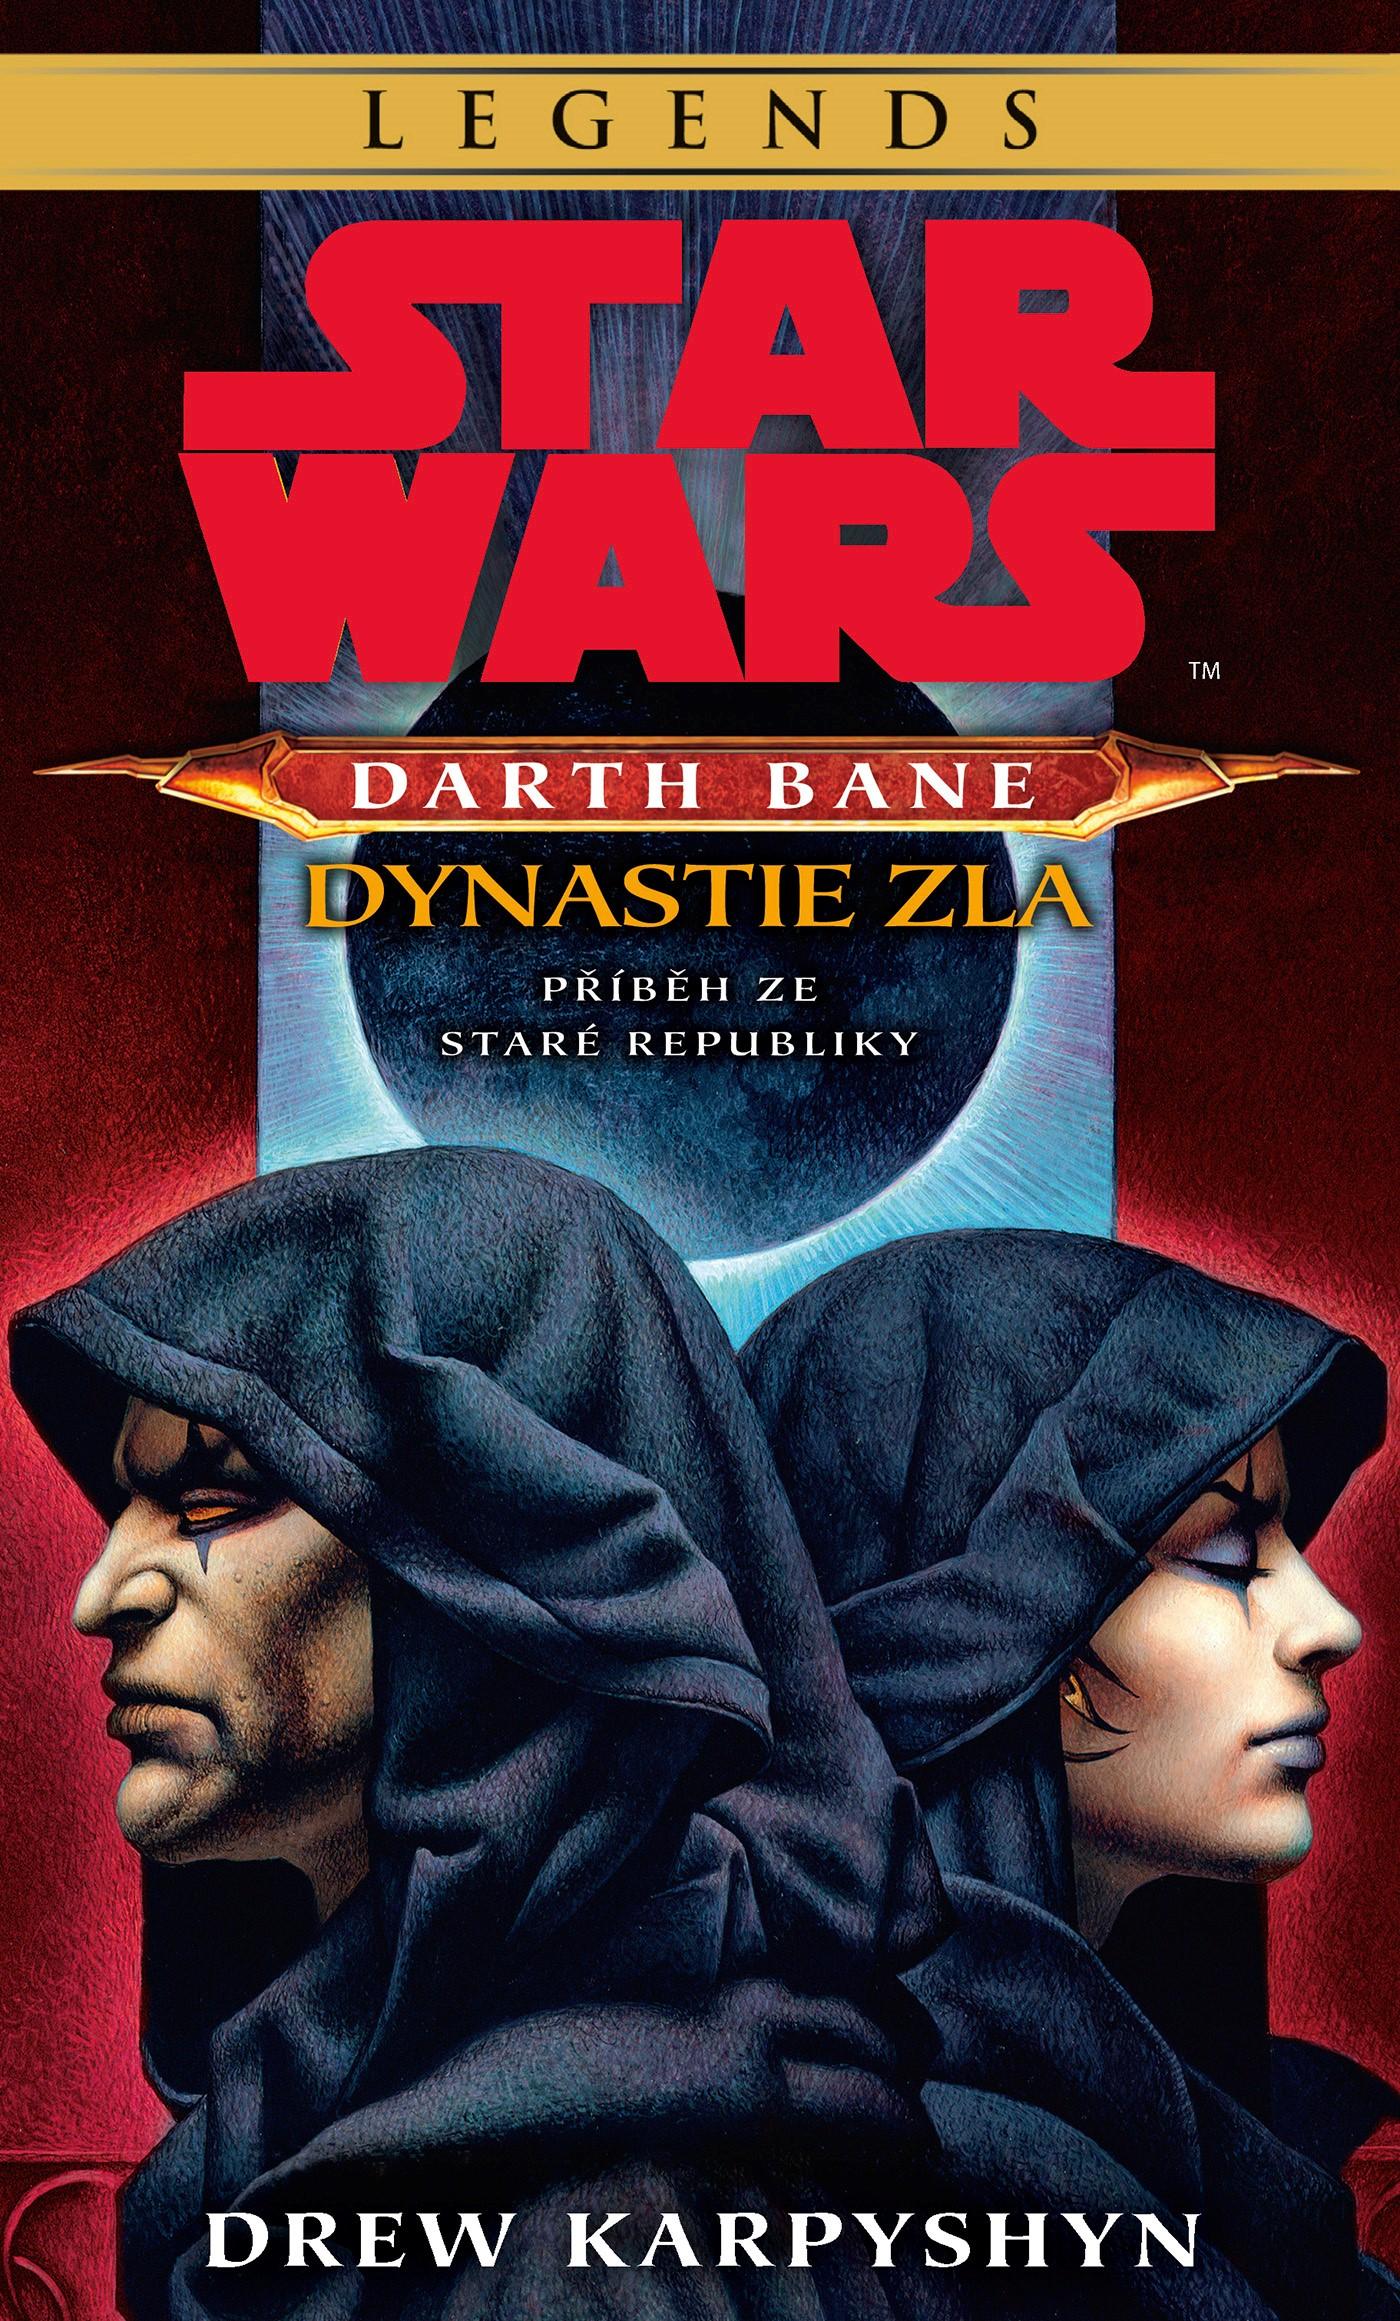 STAR WARS - DARTH BANE 3. DYNASTIE ZLA